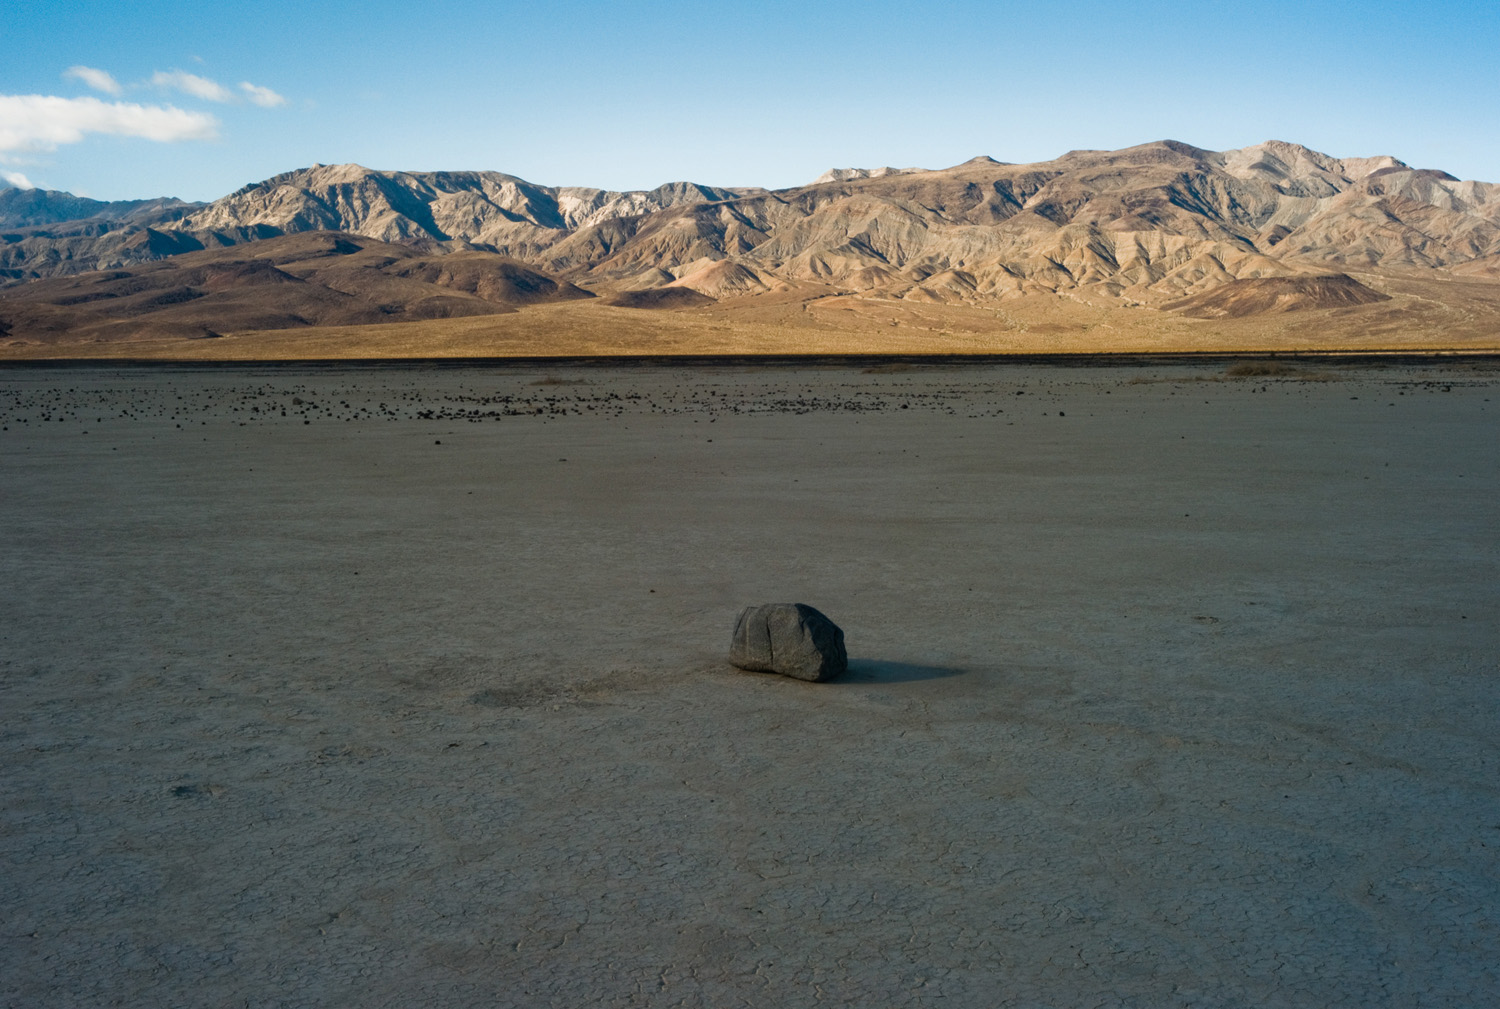 Land/Scapes : Death Valley 2007